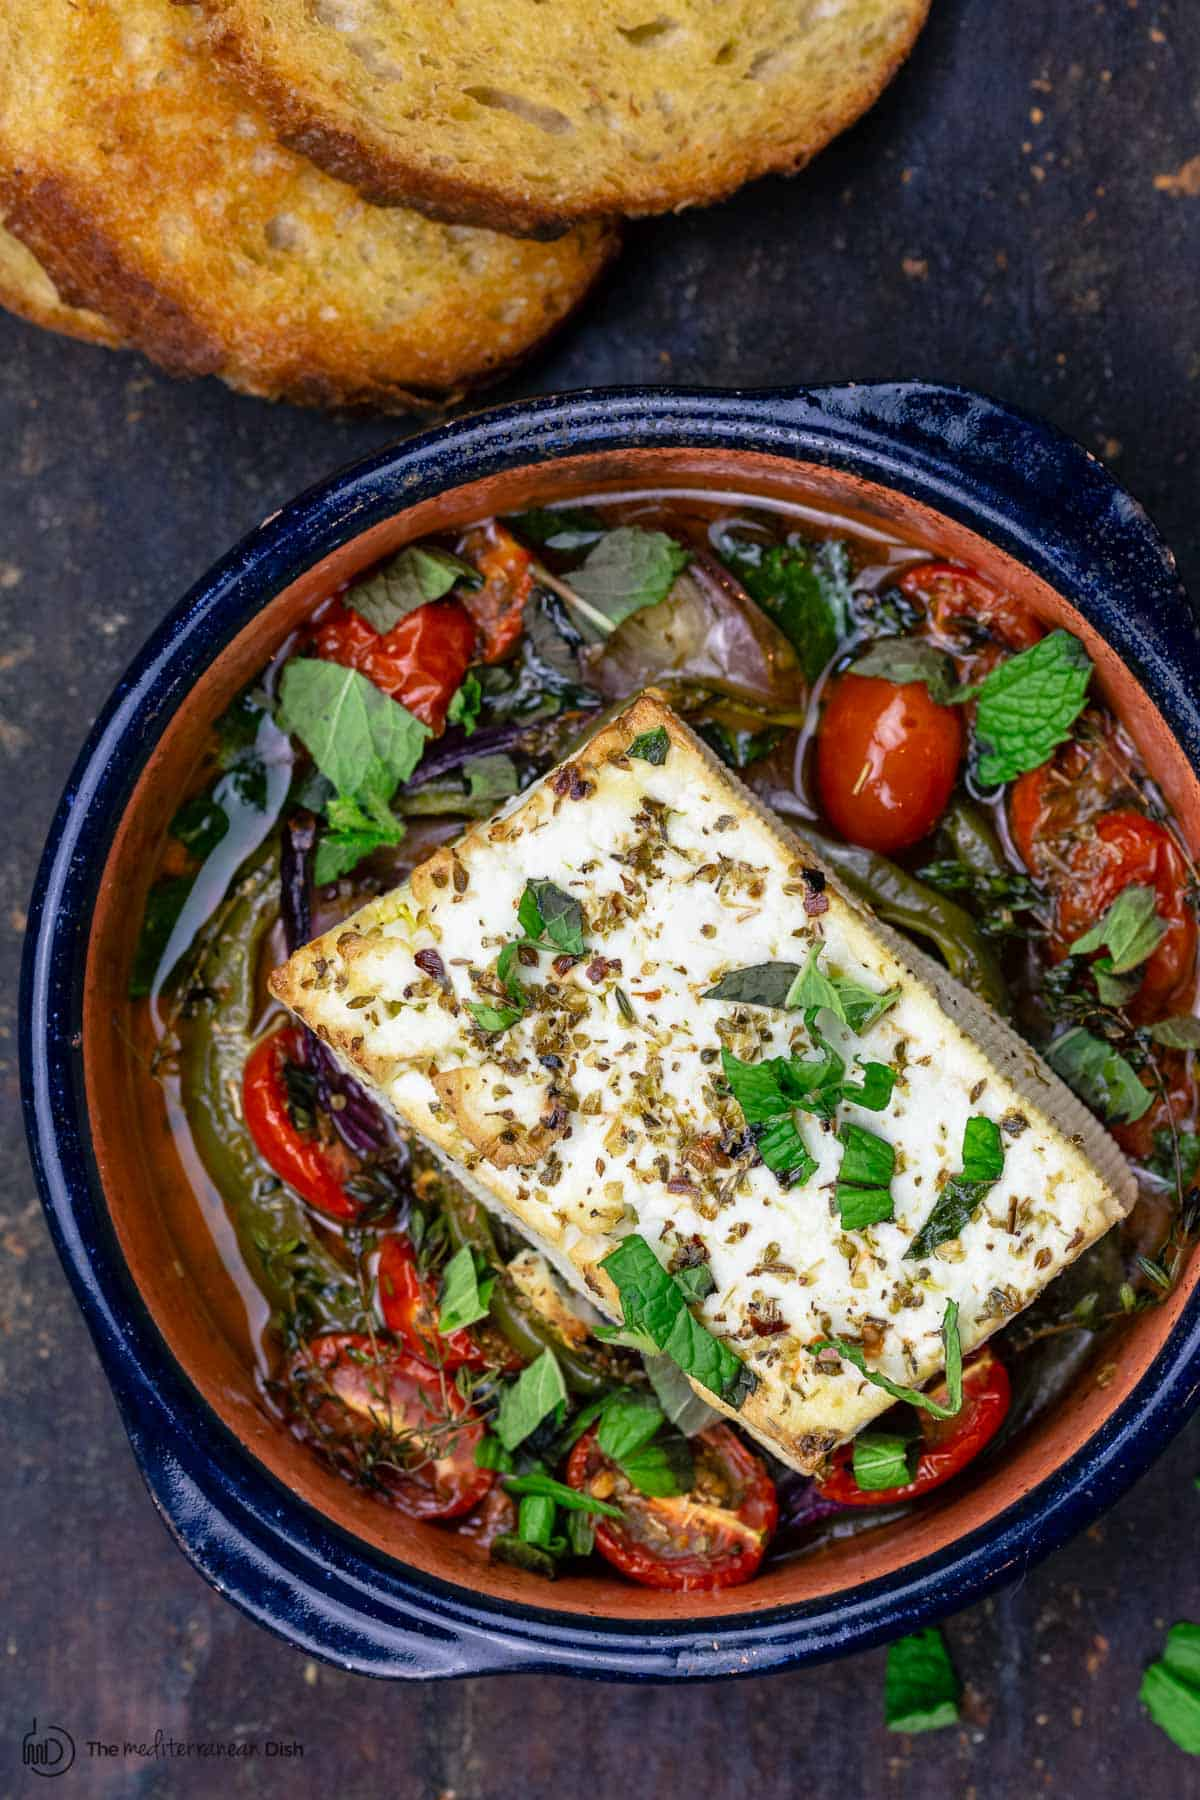 Baked feta served with a side of toasted bread